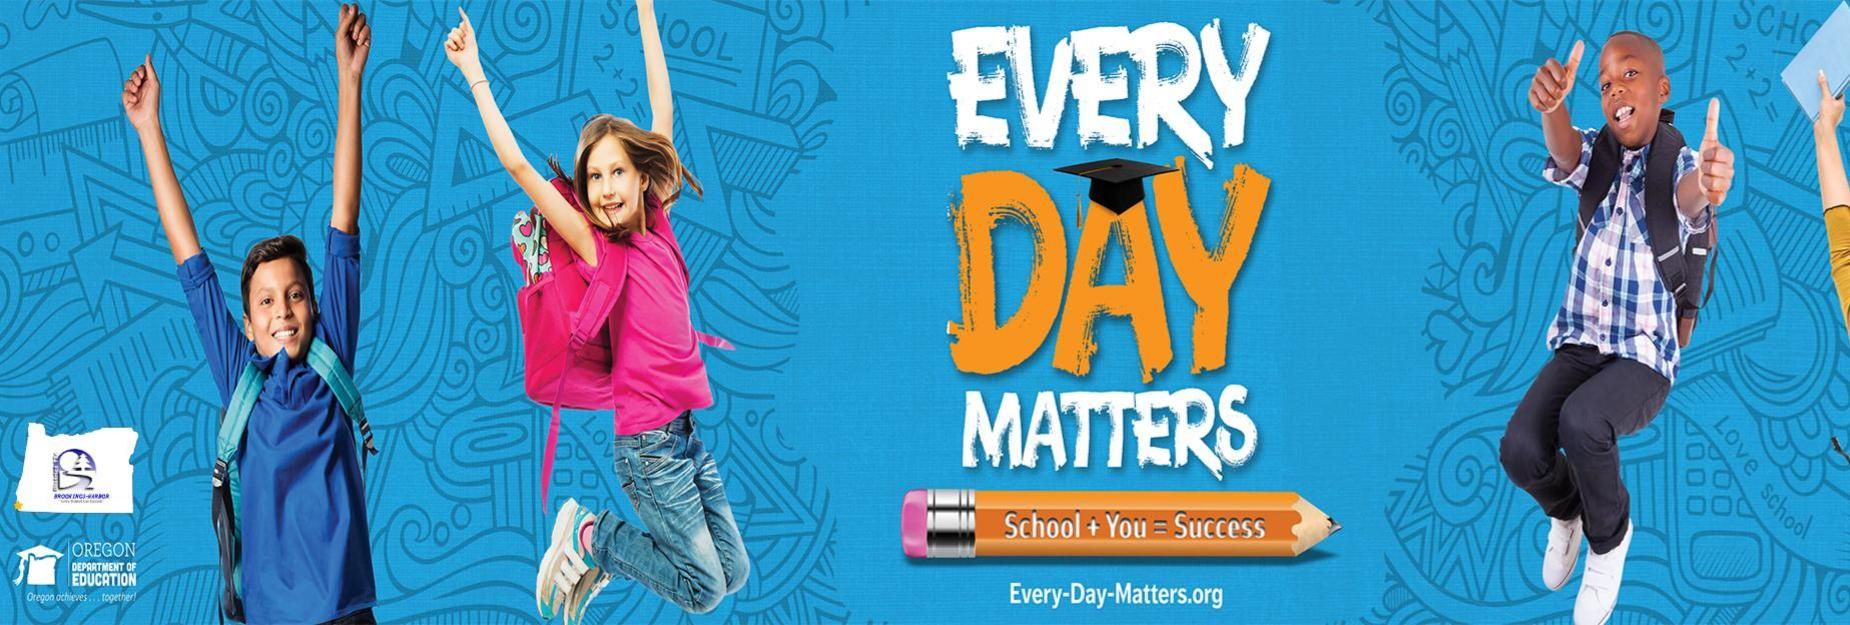 Every Day Matter Attendance Campaign